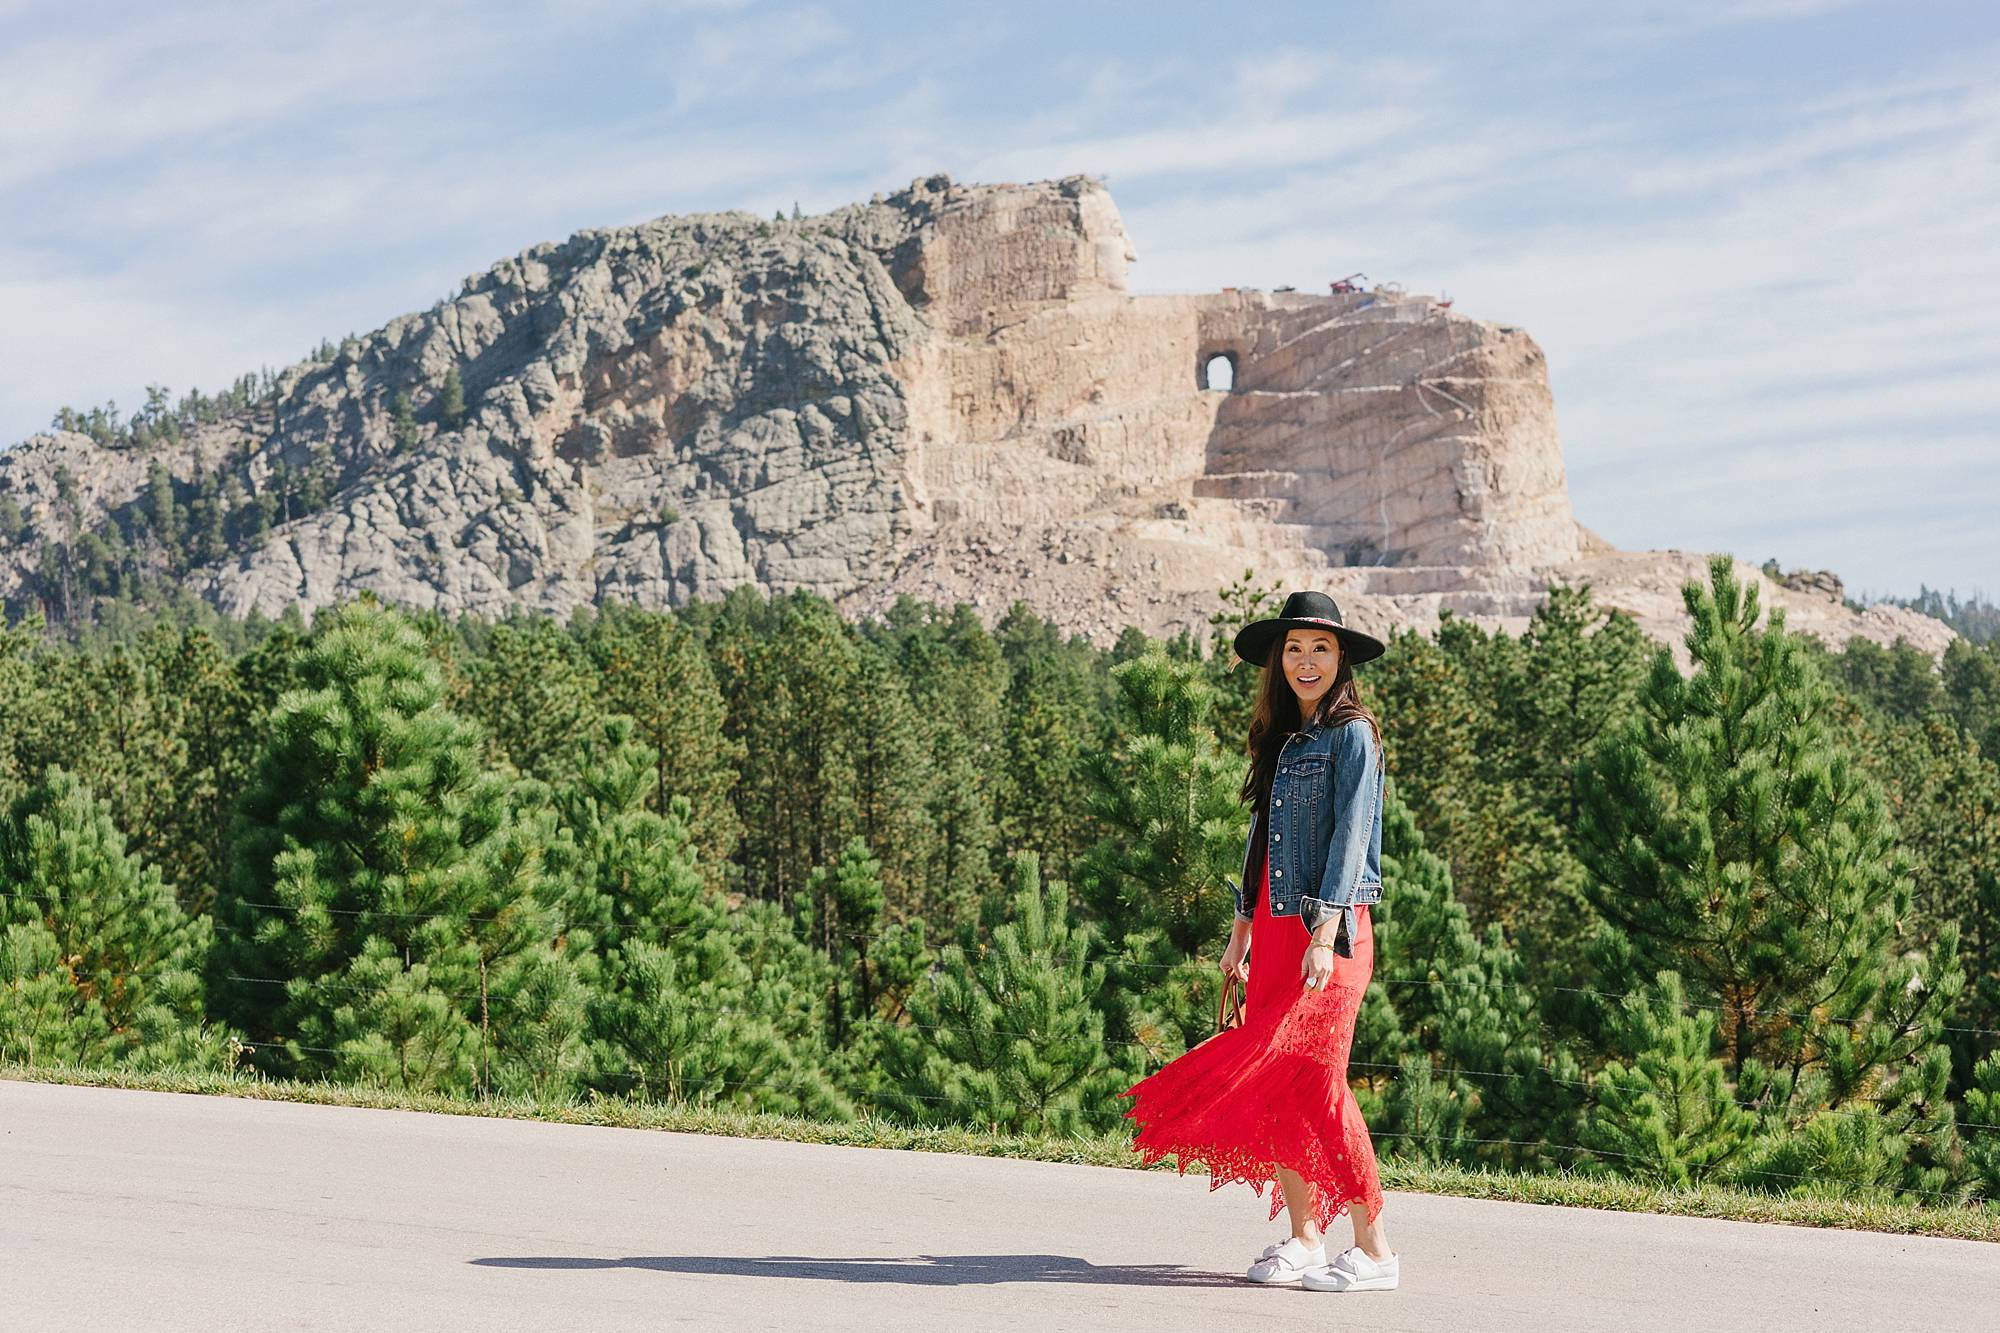 Crazy Horse Memorial in South Dakota - Diana Elizabeth Phoenix lifestyle blogger wearing red free people dress and wool hat and denim jacket posing and wearing white sneakers